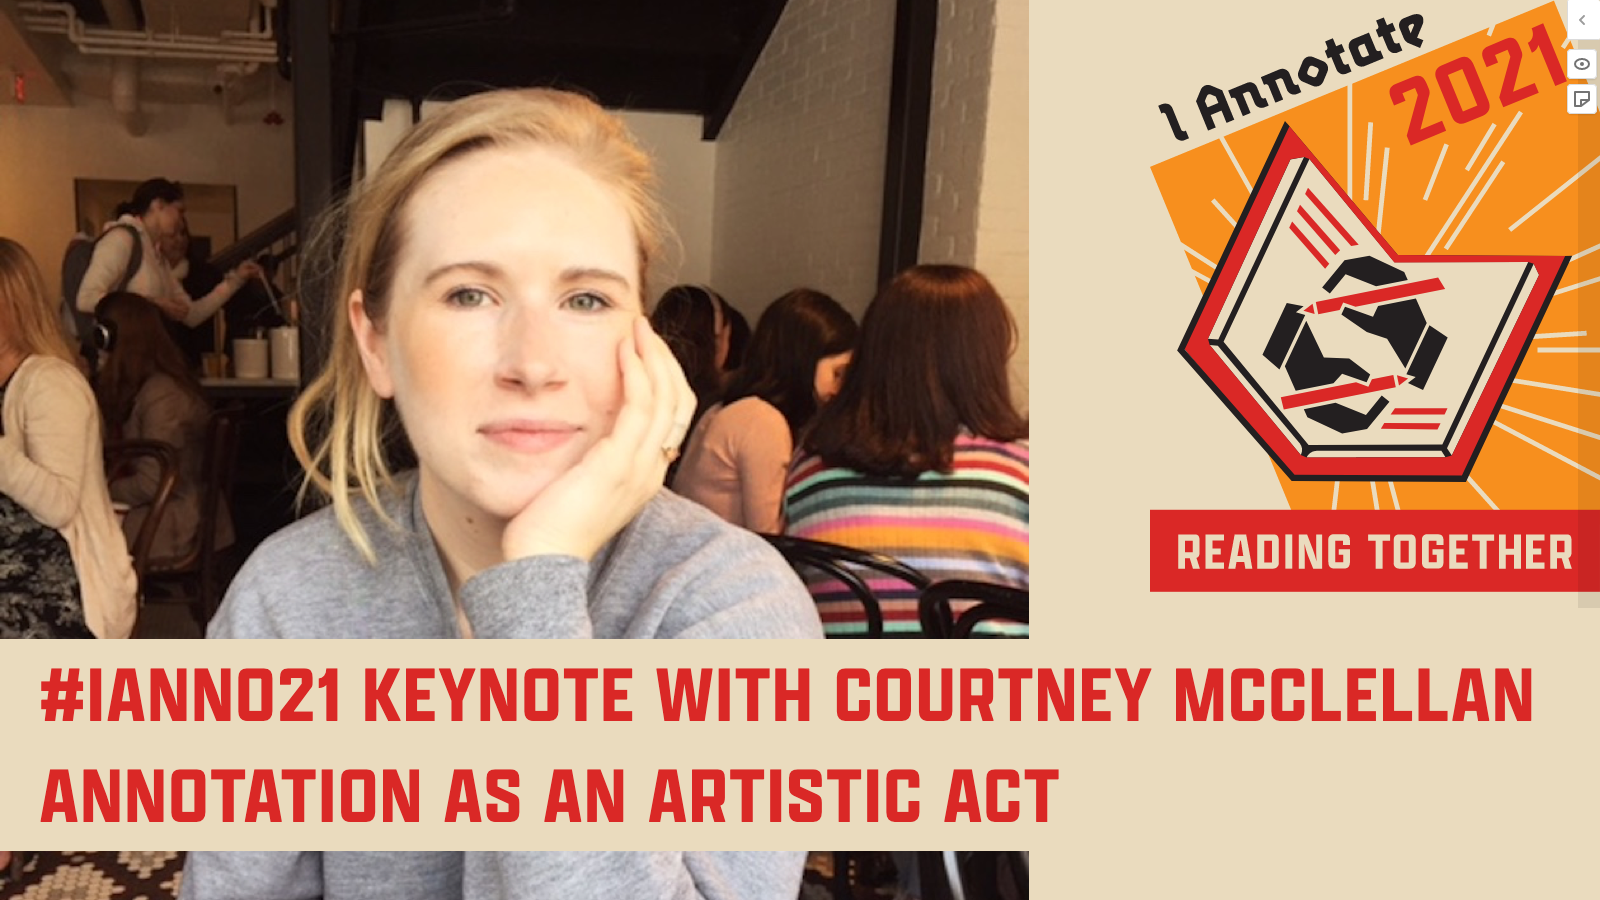 """Thumbnail from Courtney McClellan's #ianno21 Keynote video, showing her headshot, the event logo, and the title of her session: """"Annotation as an Artistic Act: Speculative Annotation, a New Library of Congress Web-based Experiment"""""""